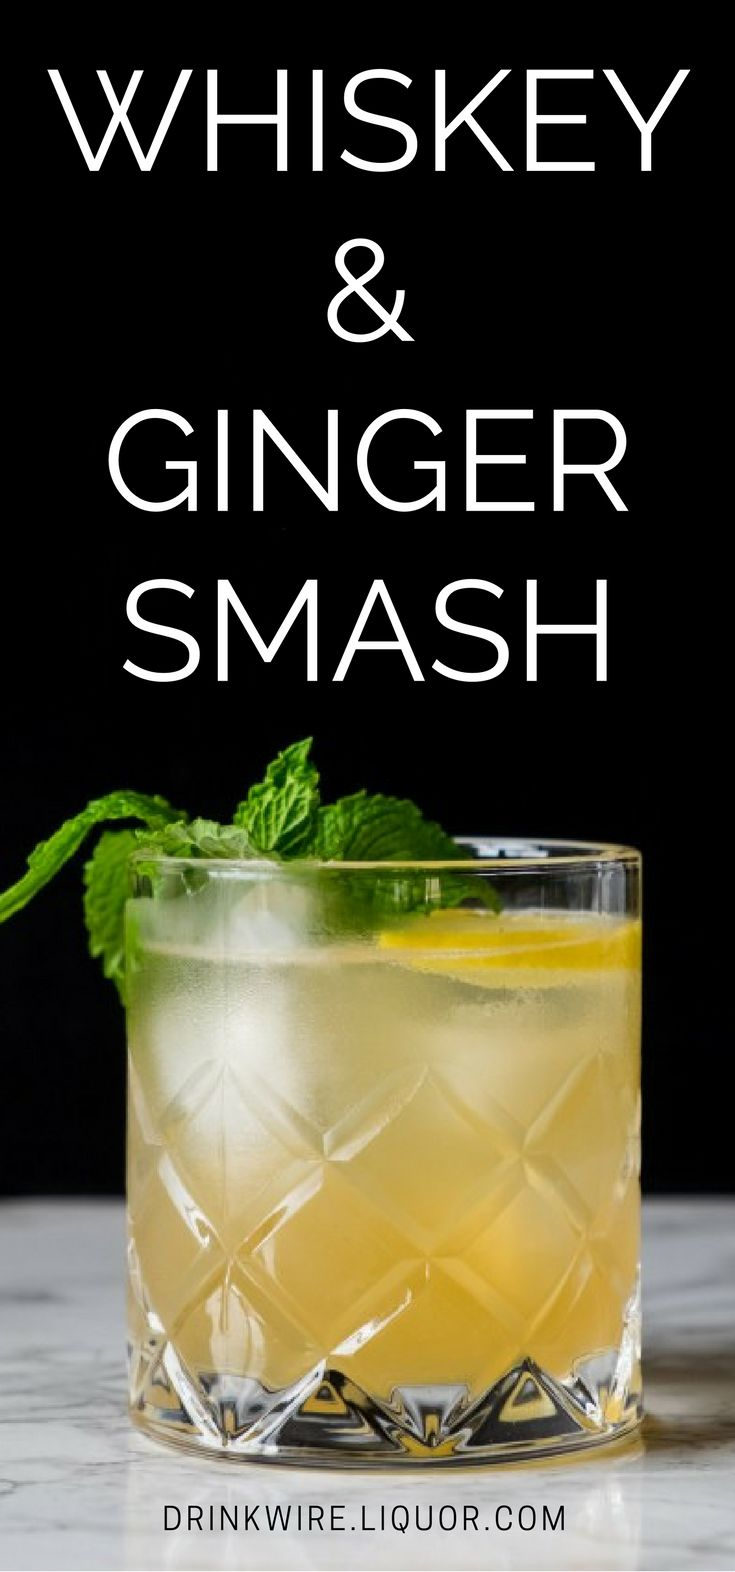 The #Whiskey & Ginger Smash is a terrific combo! They're like the #perfect couple. Great on their own but at their best together.